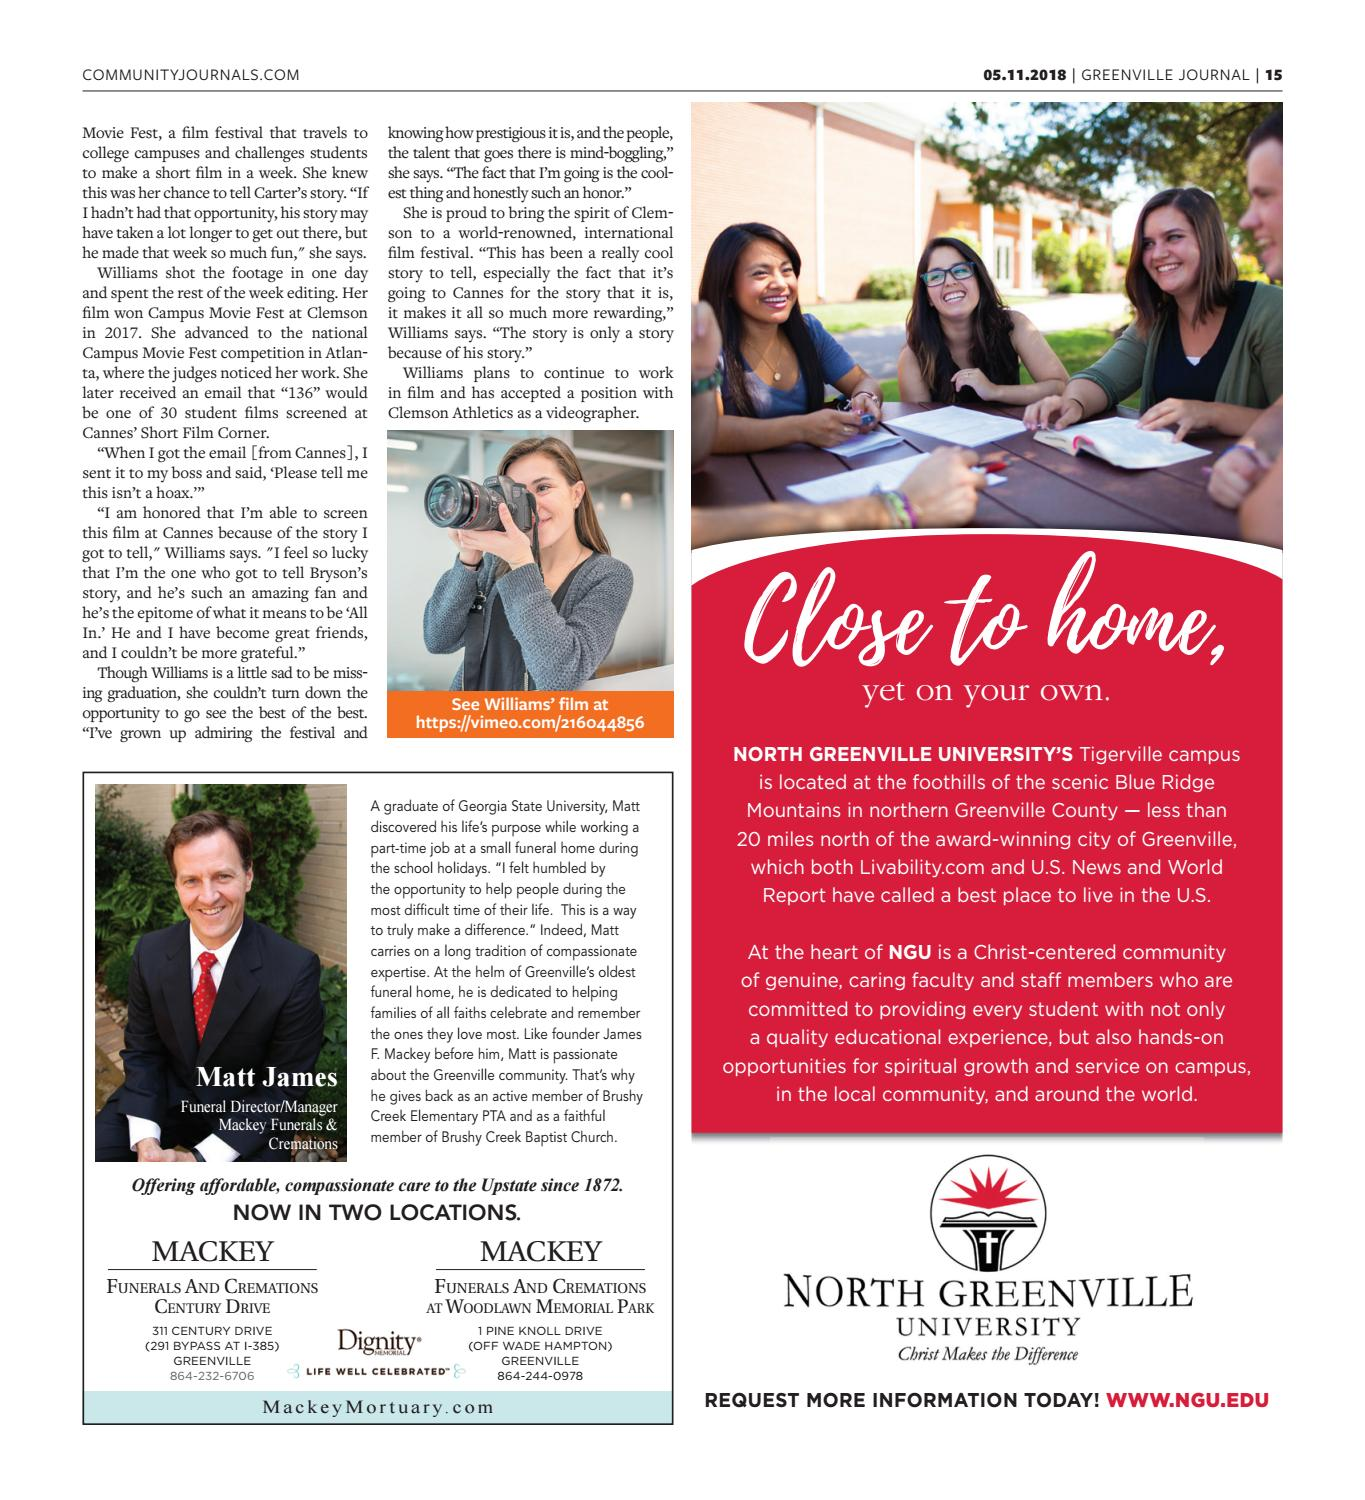 May 11, 2018 Greenville Journal by Community Journals - issuu